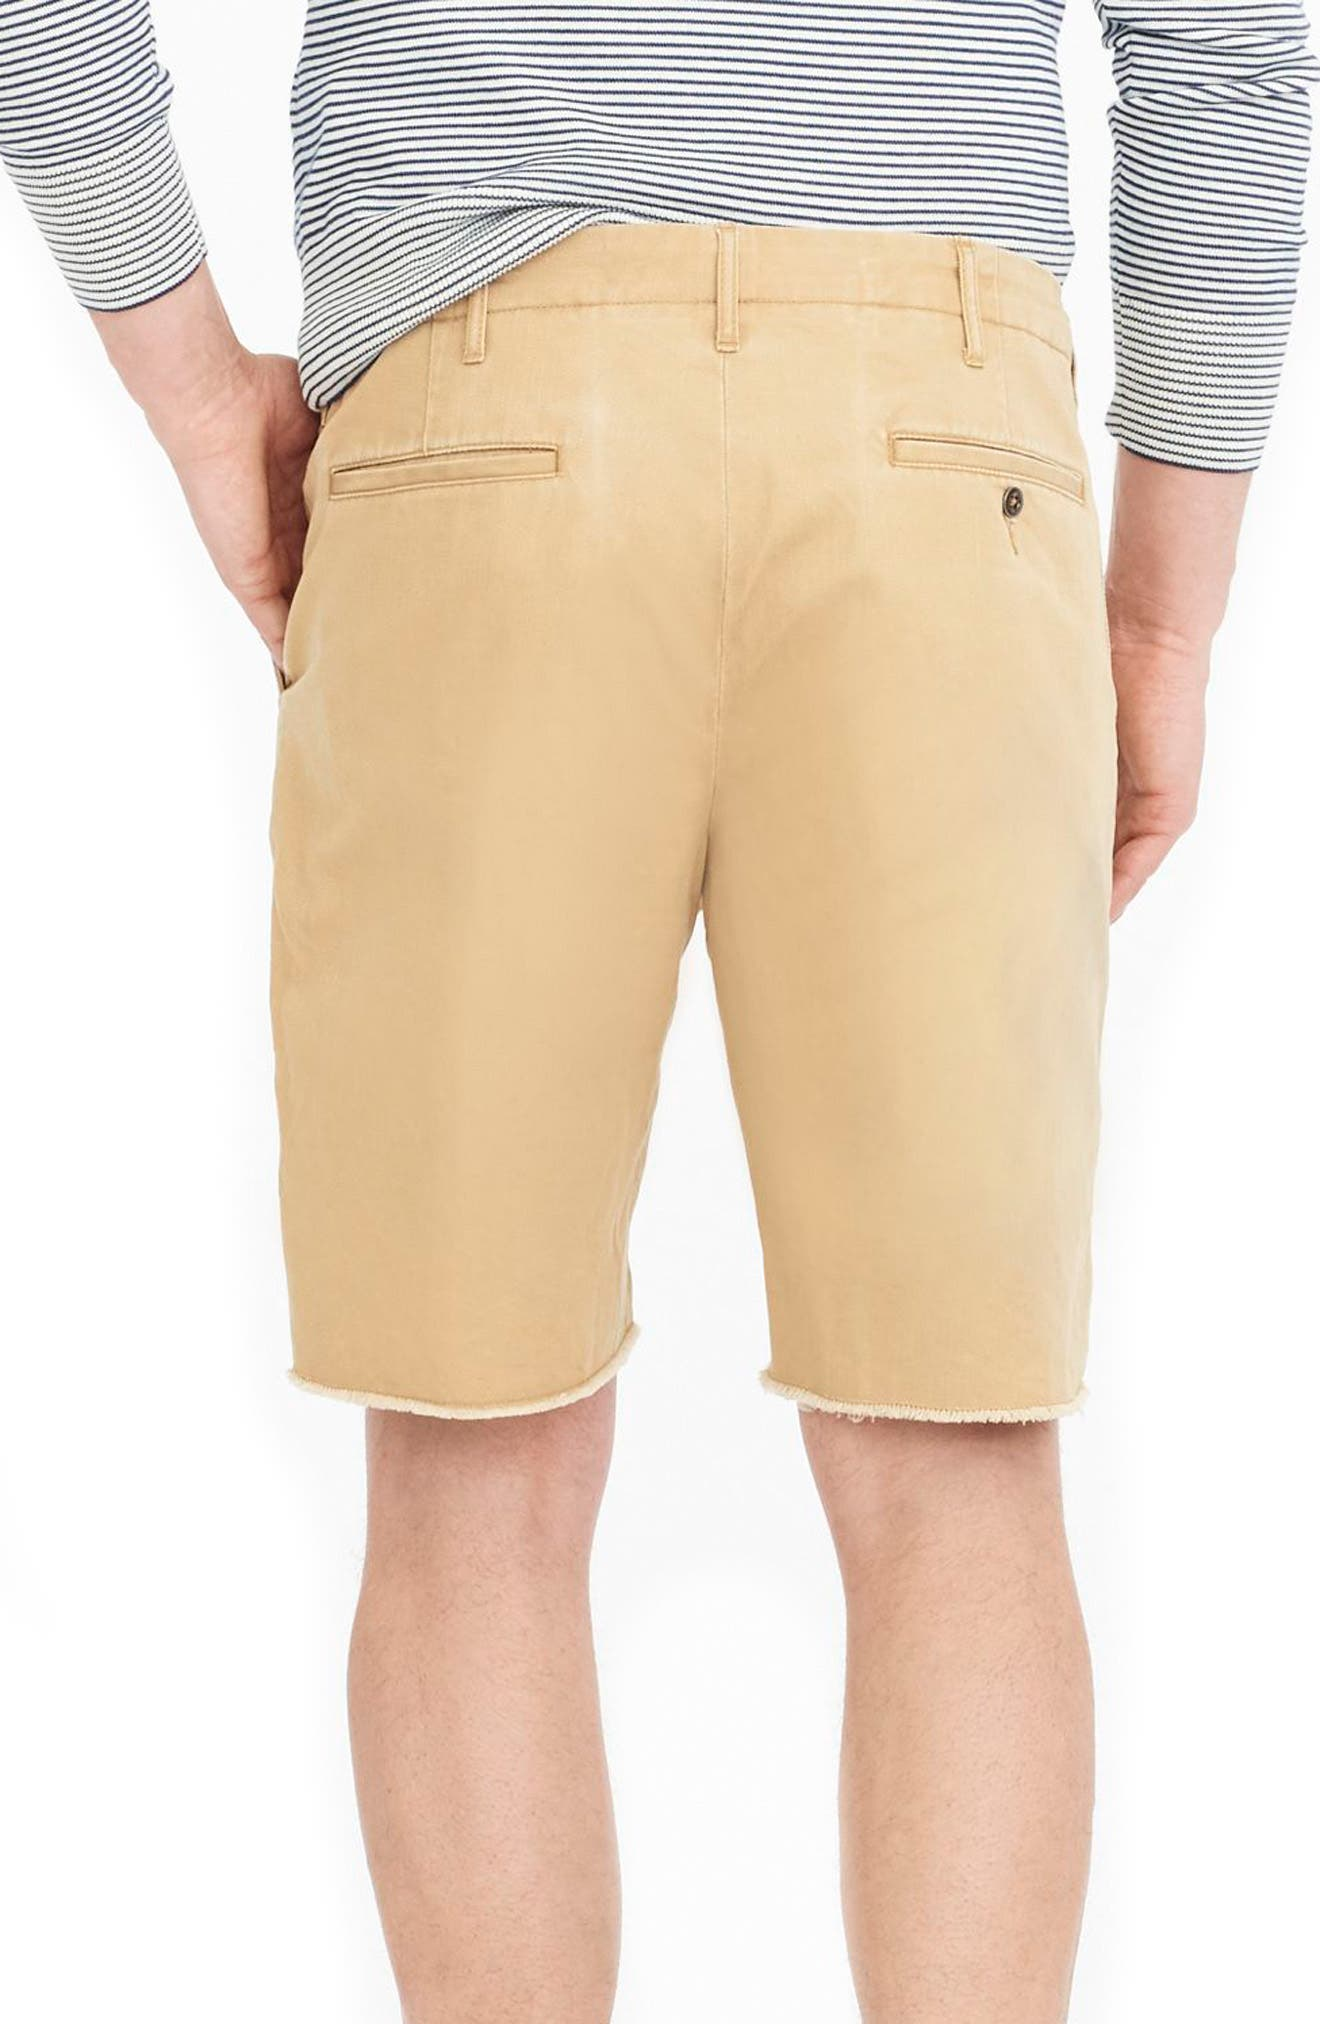 Distressed Officer's Shorts,                             Alternate thumbnail 2, color,                             251